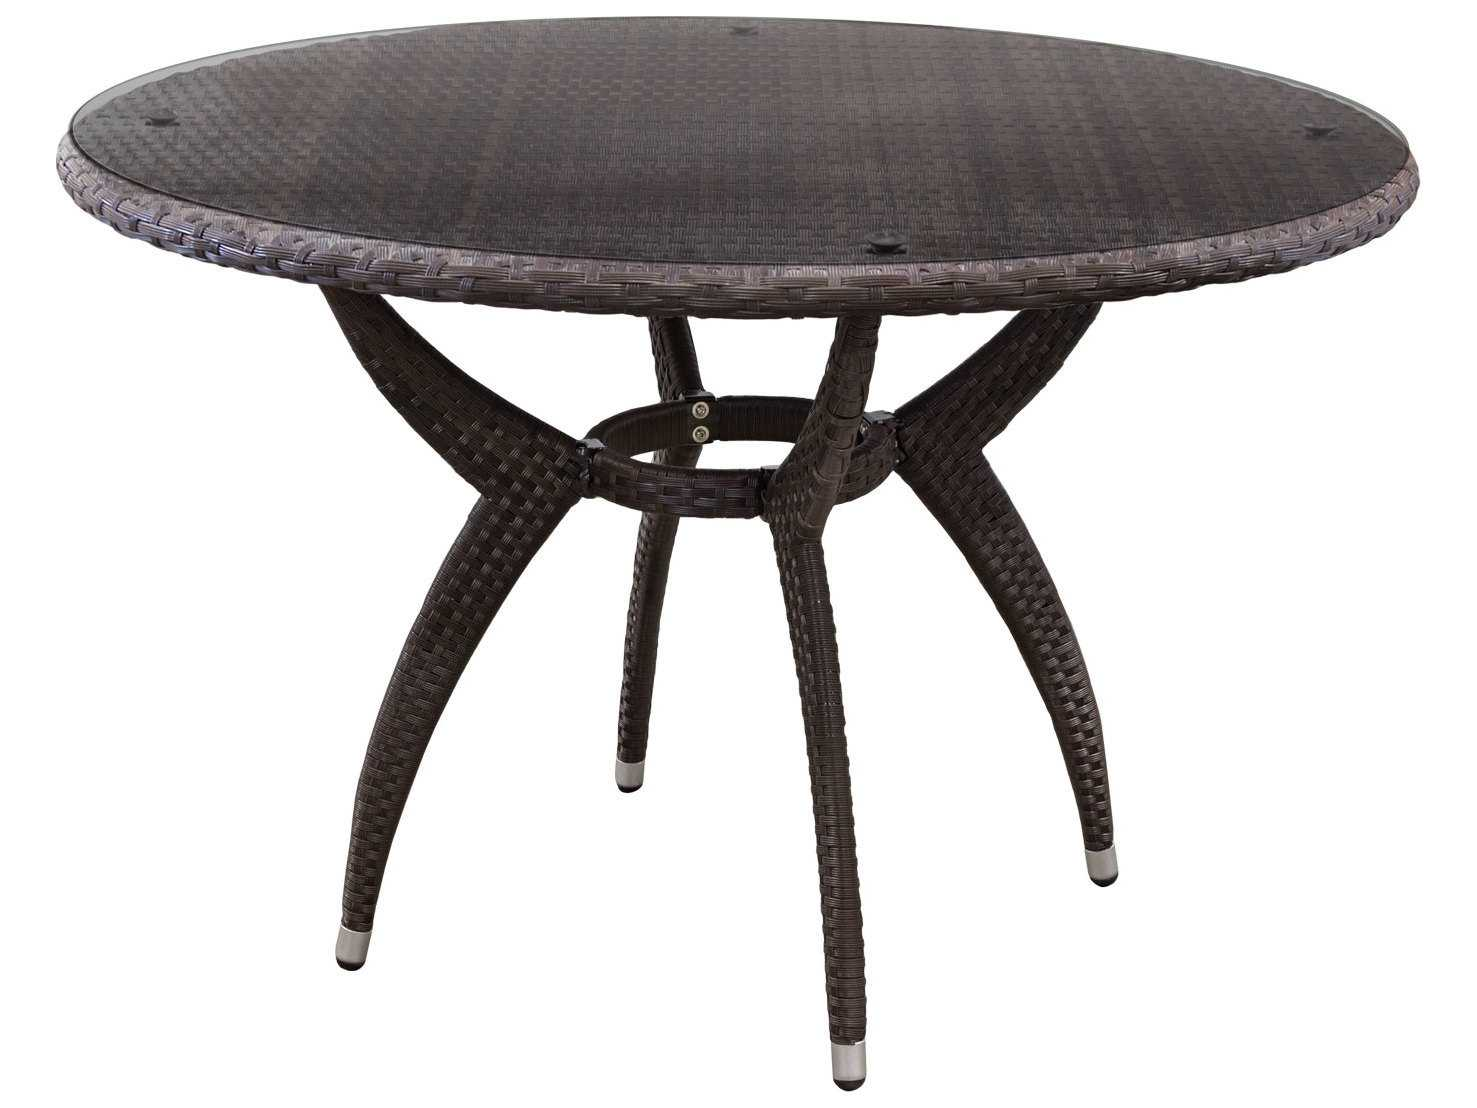 Home Patio Tables Dining Tables Shop All Source Outdoor